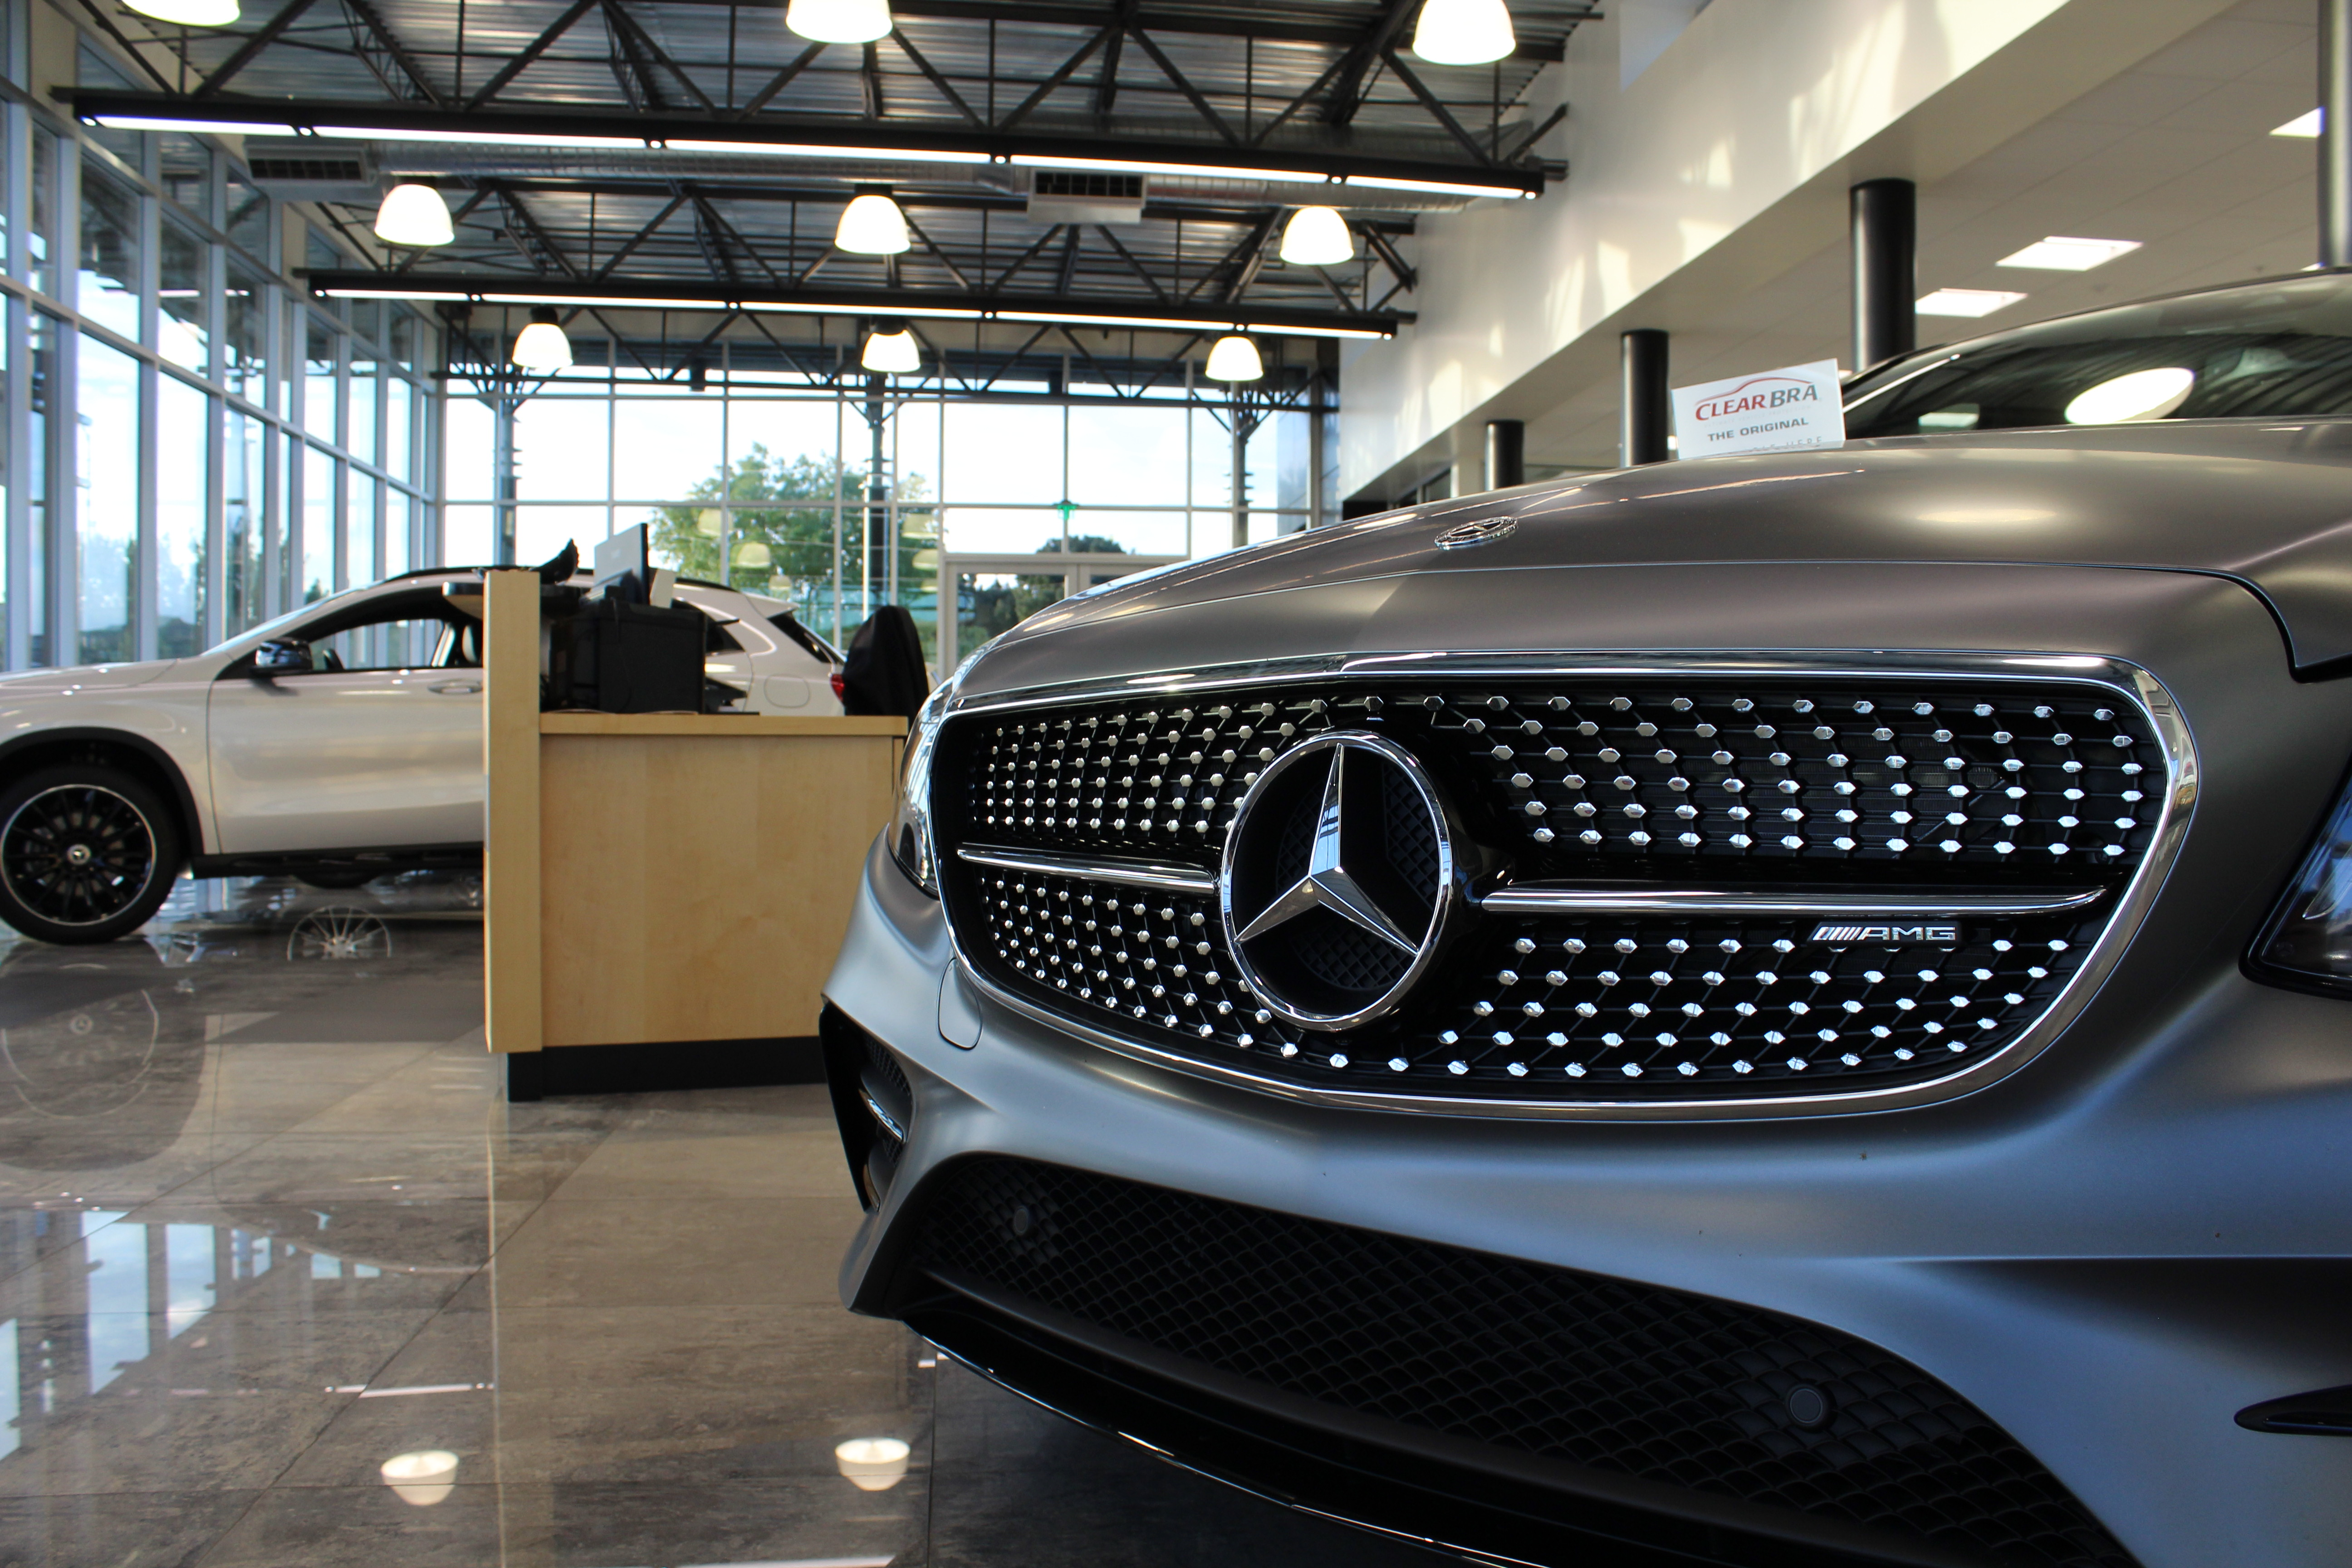 The building of a legacy: Bertha Benz paves the way for ...